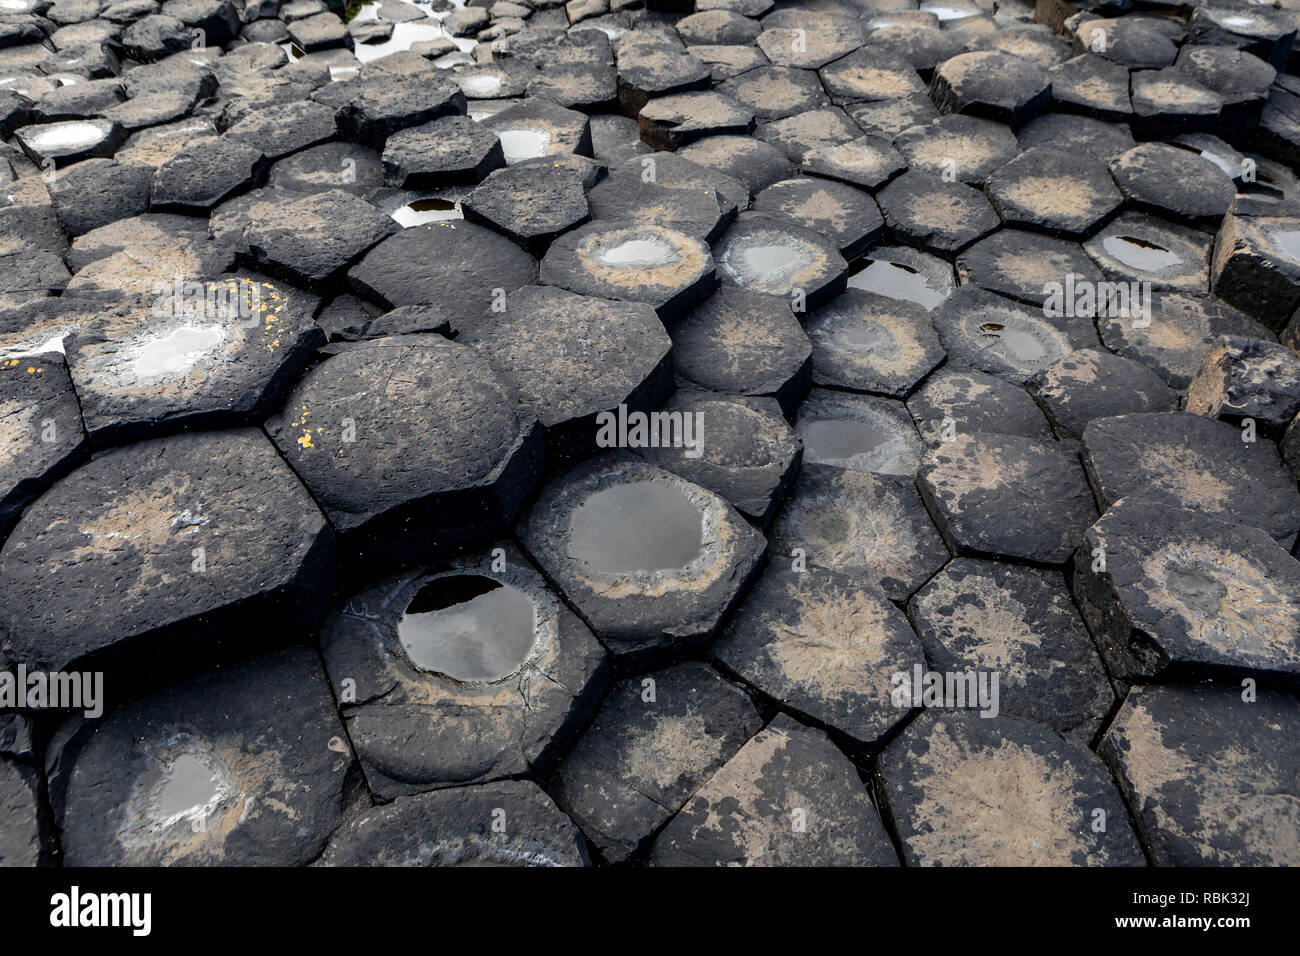 Giant's Causeway, the result of an ancient folcano eruption and listed as a  World Heritage Site, in Northern Ireland. - Stock Image